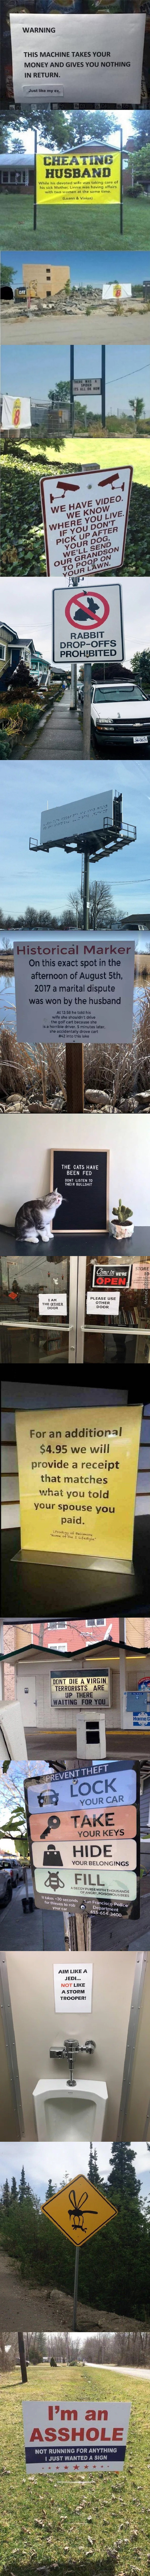 Just A Compilation Of Signs #5